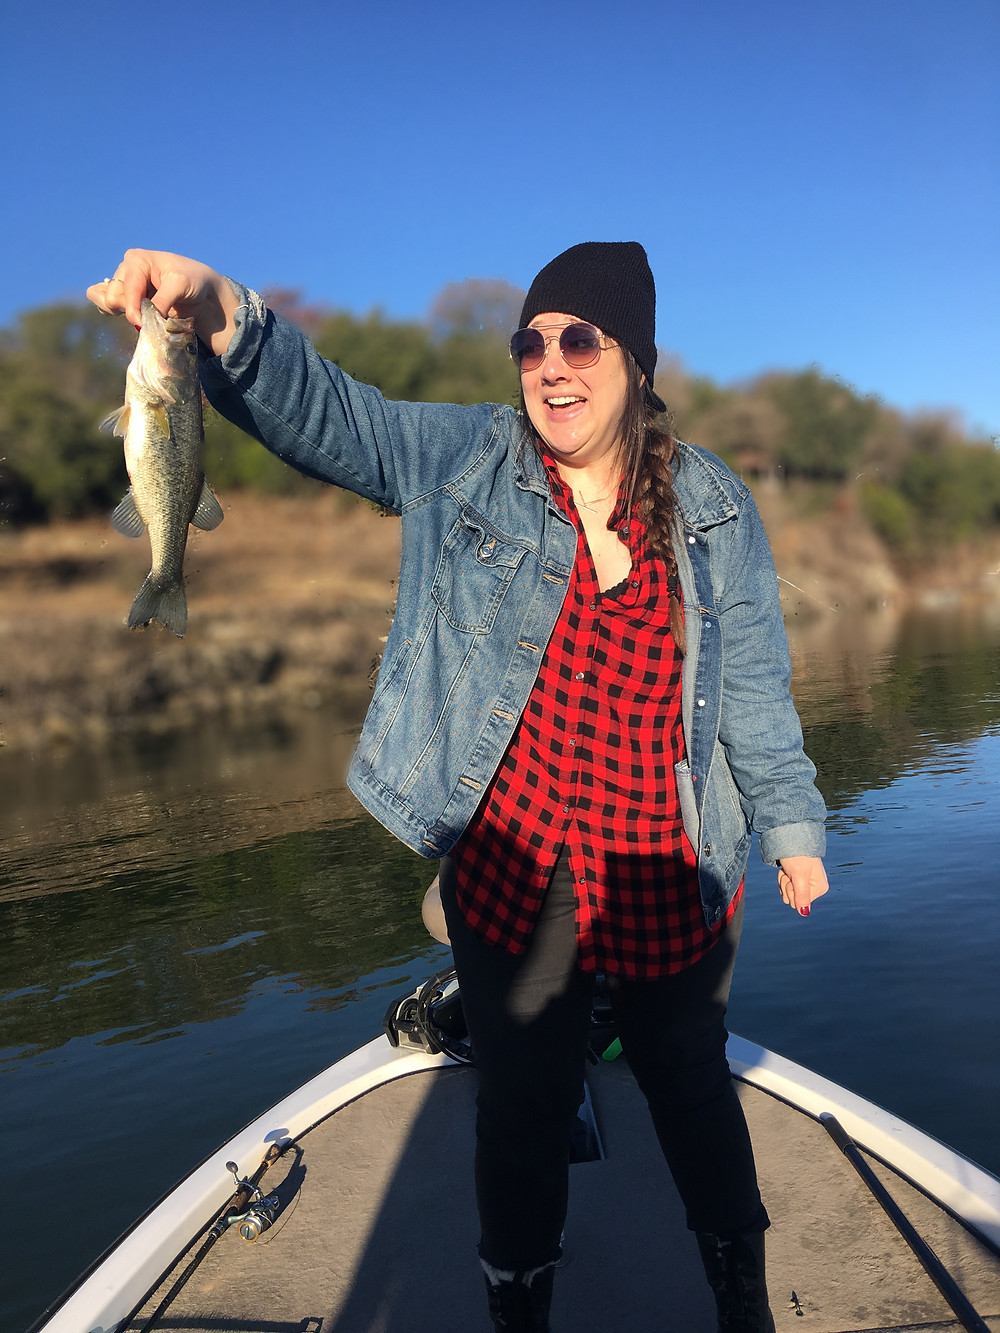 Her first Lake Travis bass